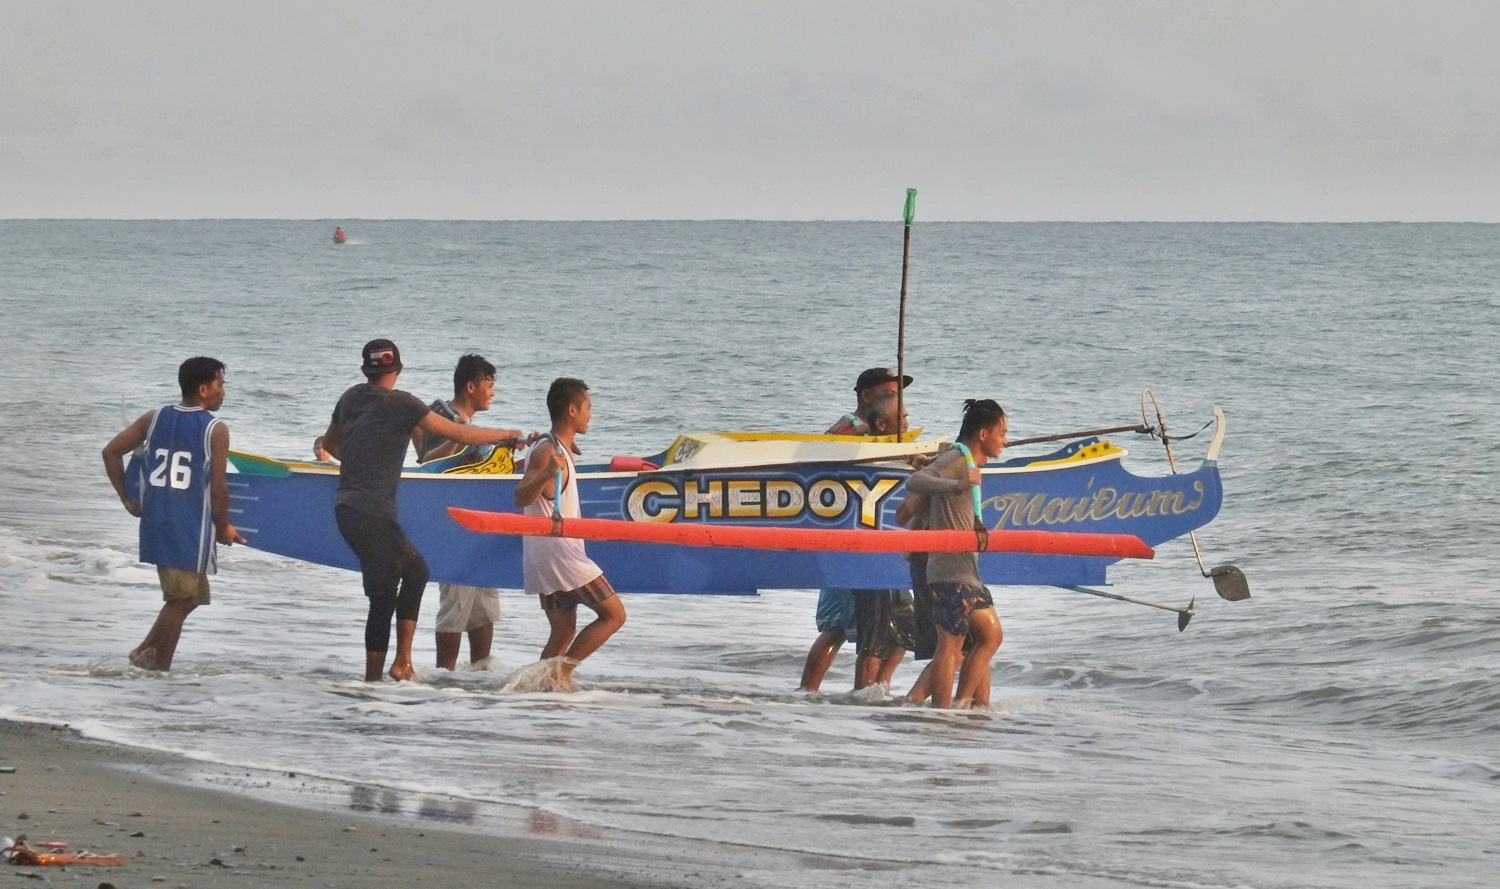 Fishermen helping each other in carrying a small fishing boat